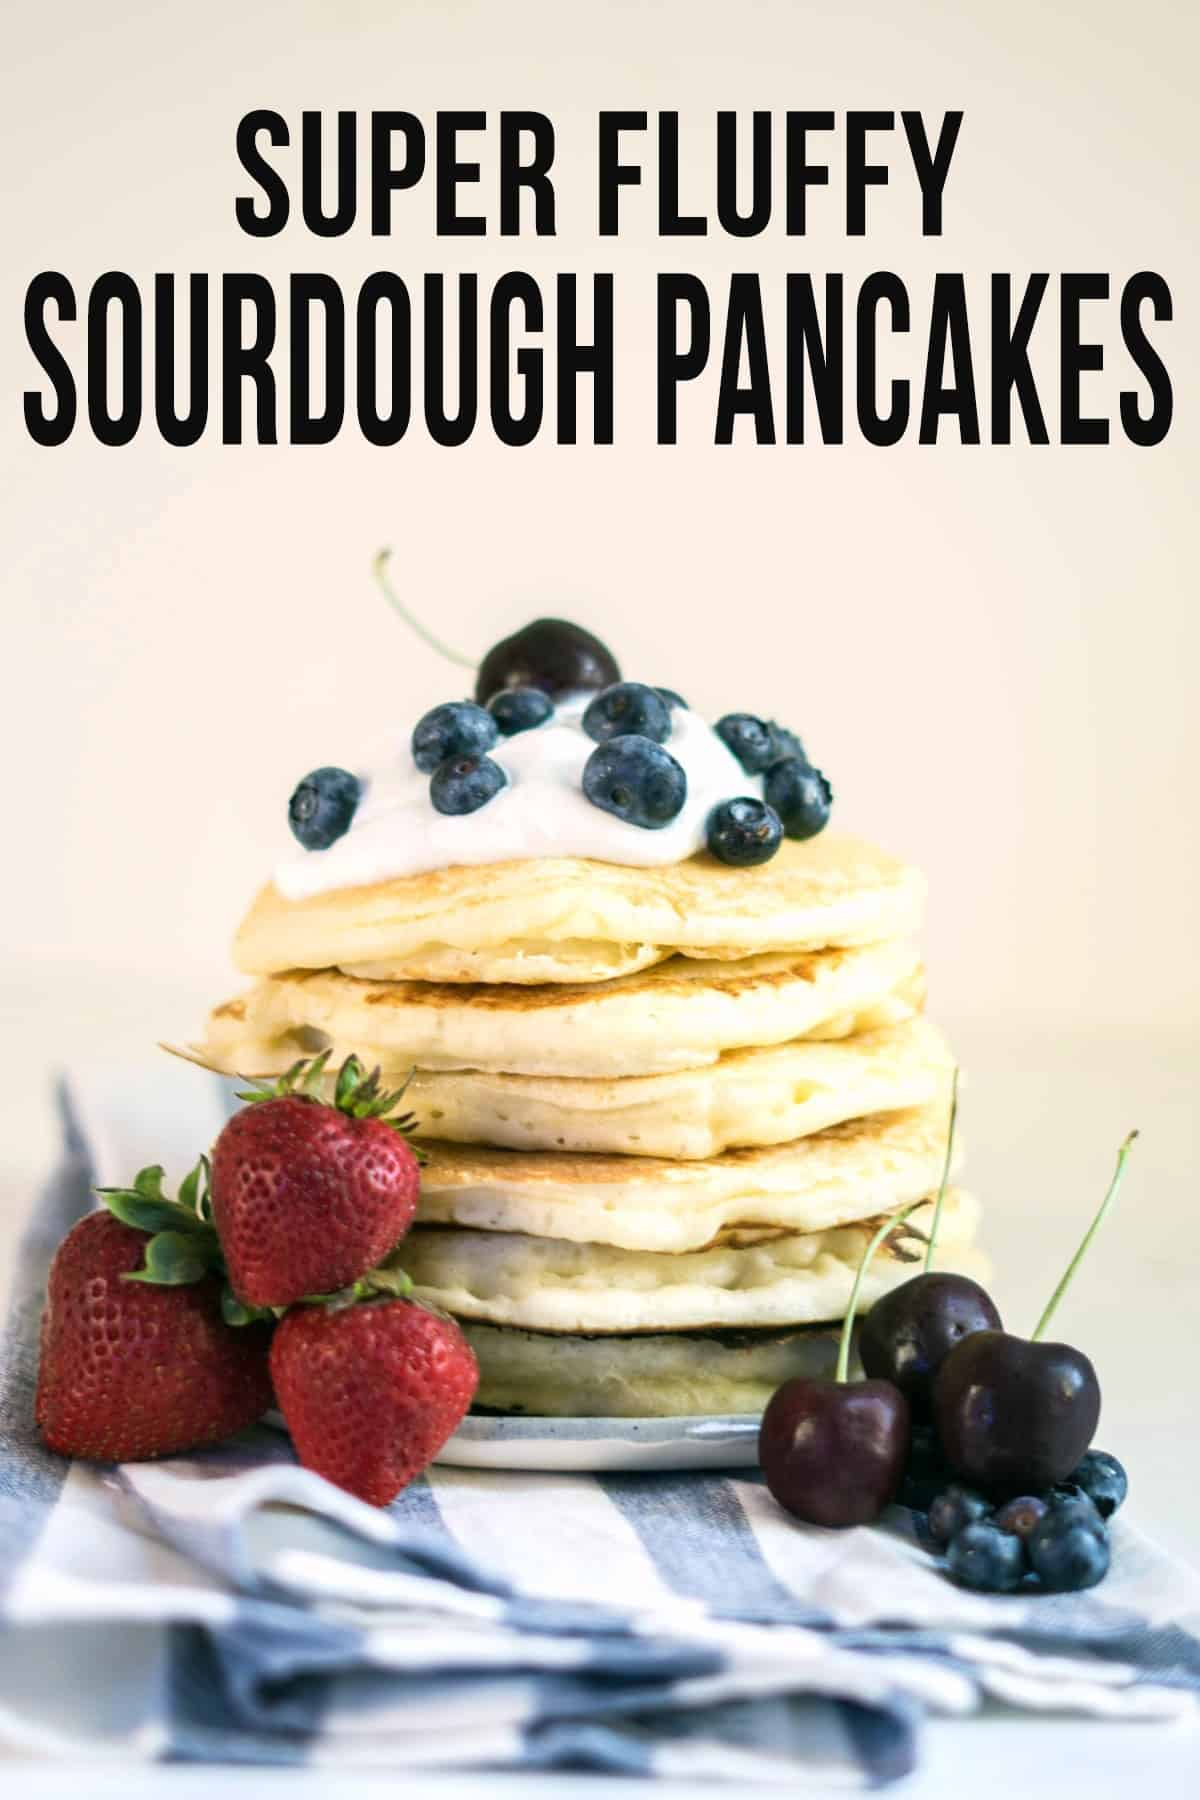 Sourdough Pancakes (super fluffy). Use your blender to whip up these delicious sourdough pancakes in no time! Plus read my tips for getting picture perfect pancakes every single time! #sourdough #sourdoughpancakes #sourdoughstarter #pancakes #breakfast #healthybreakfast